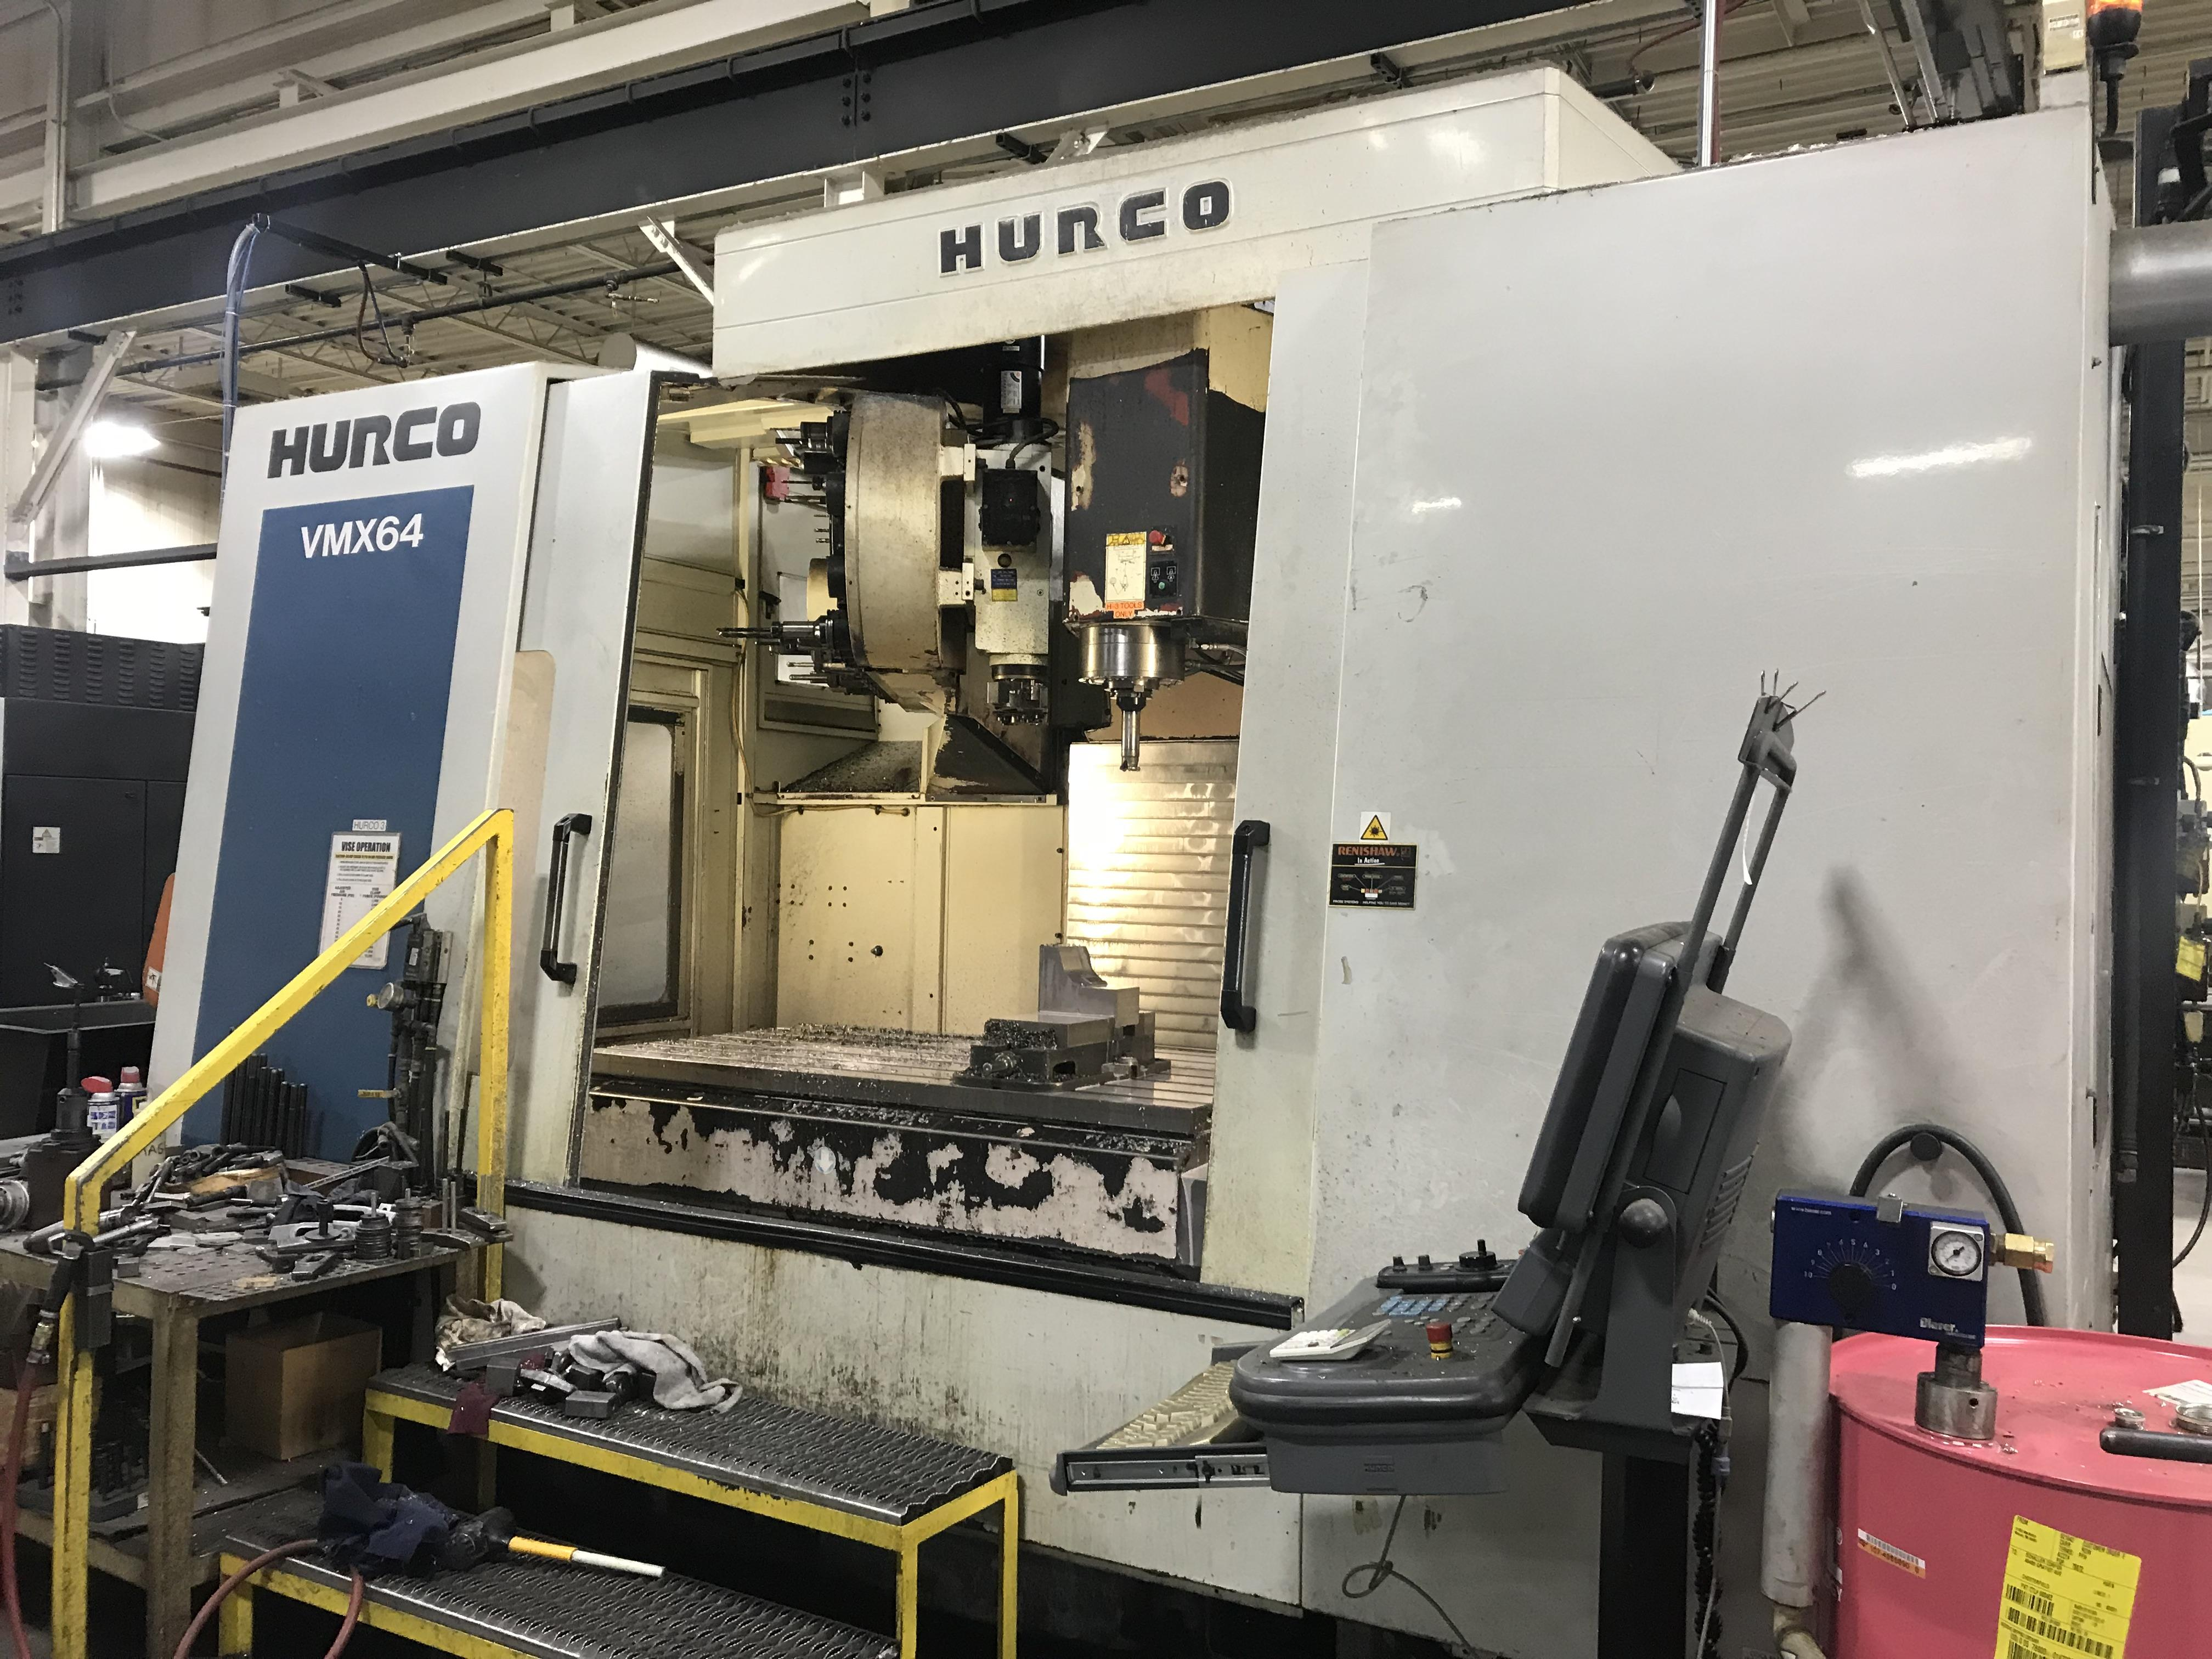 Hurco VMX64/50T CNC Vertical Machining Center, WinMax CNC, 64